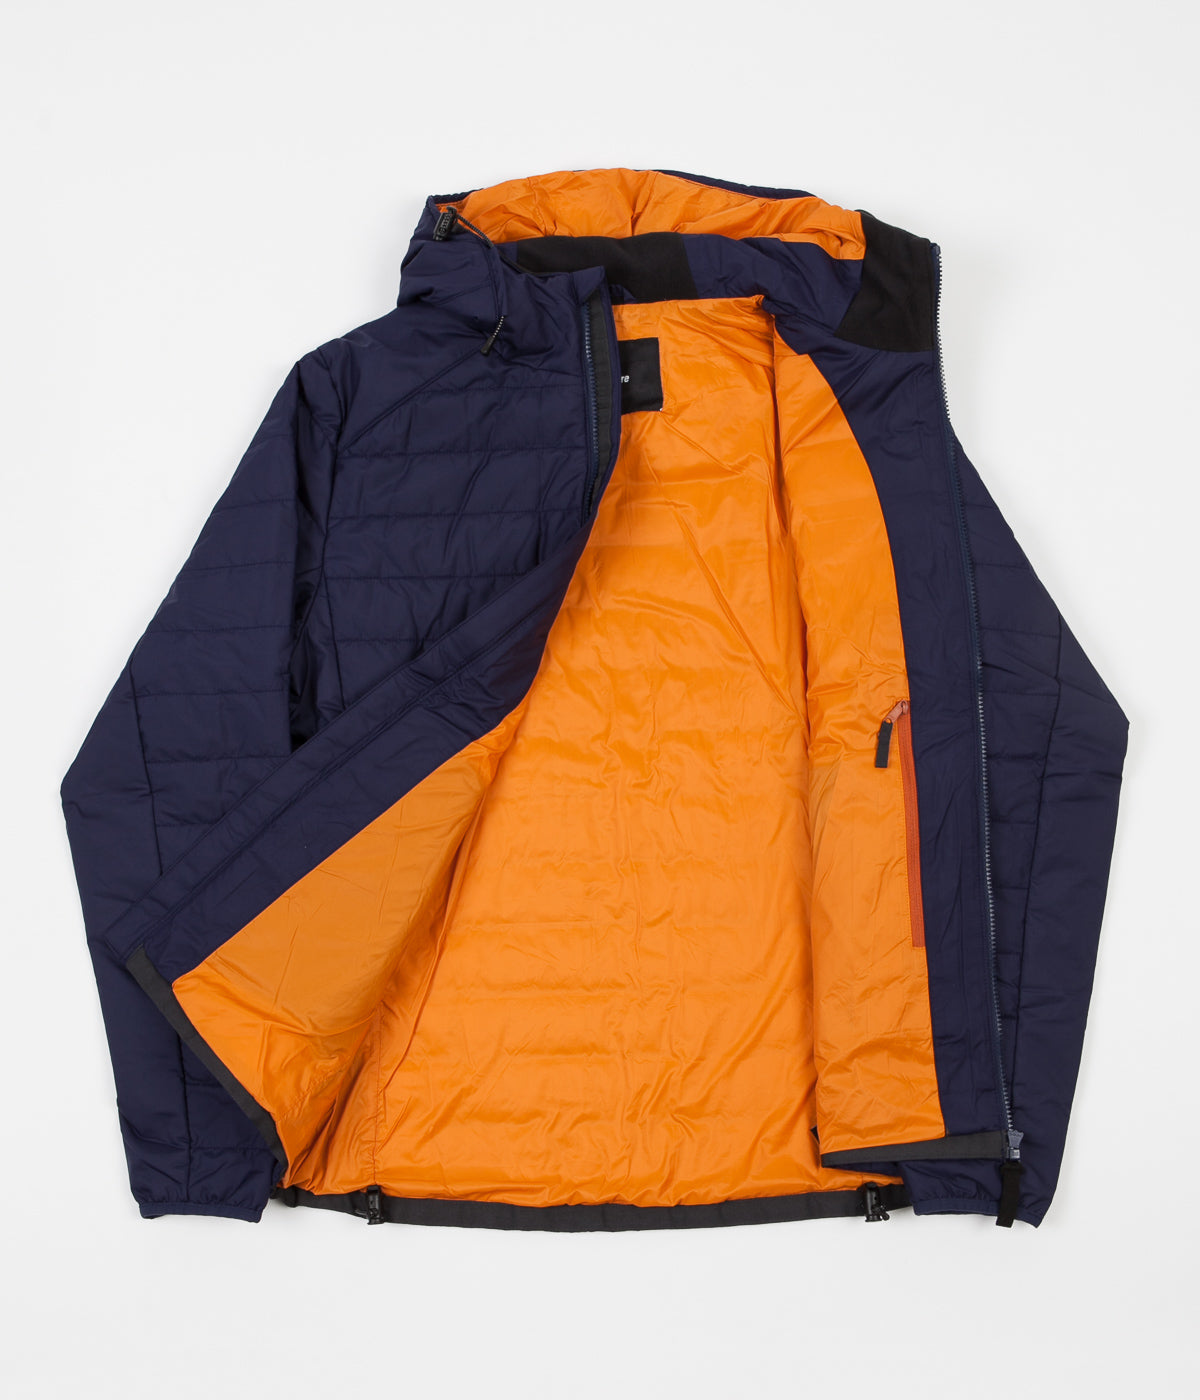 Finisterre Nimbus Jacket - Moonlight / Russet